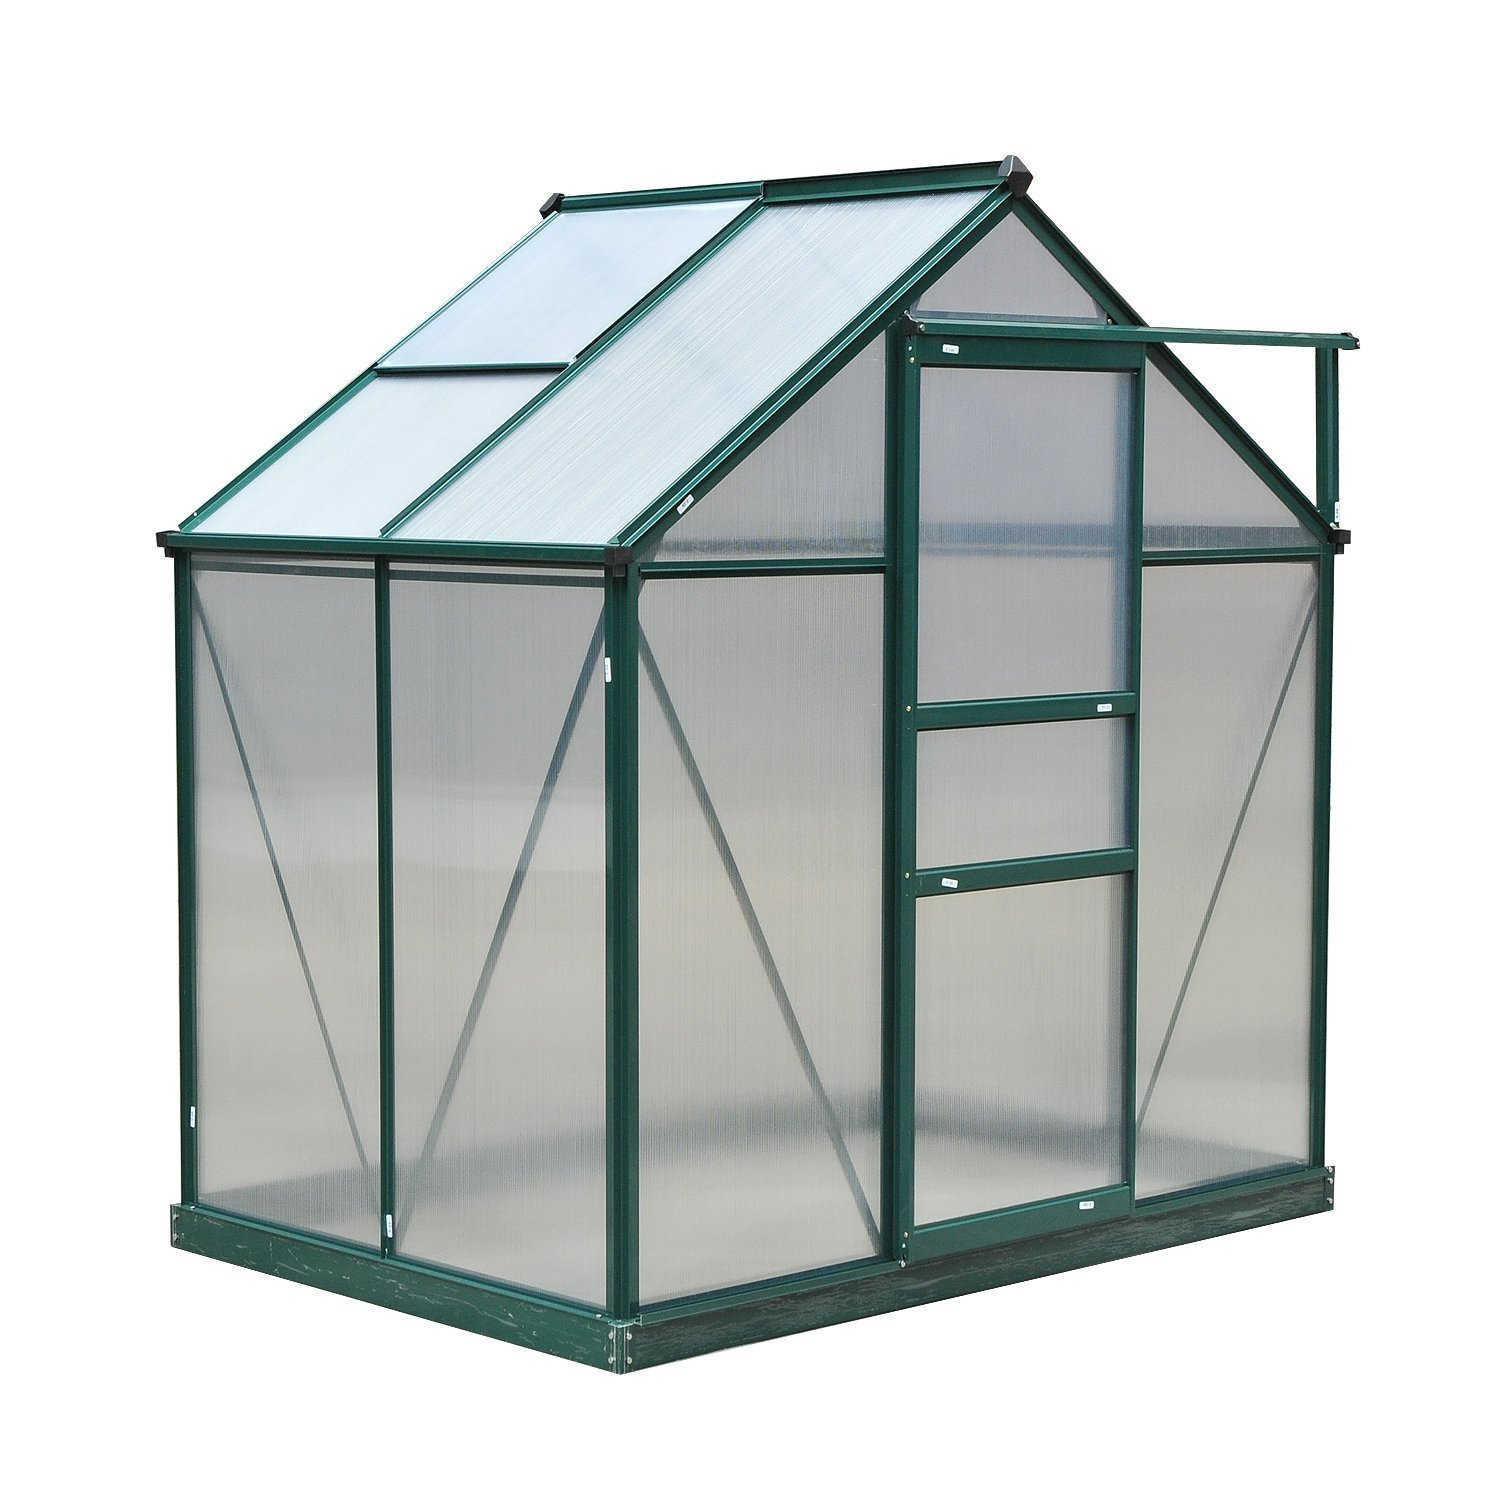 Outsunny 6'L x 4'W x 7'H Polycarbonate Walk-In Garden Greenhouse by Outsunny